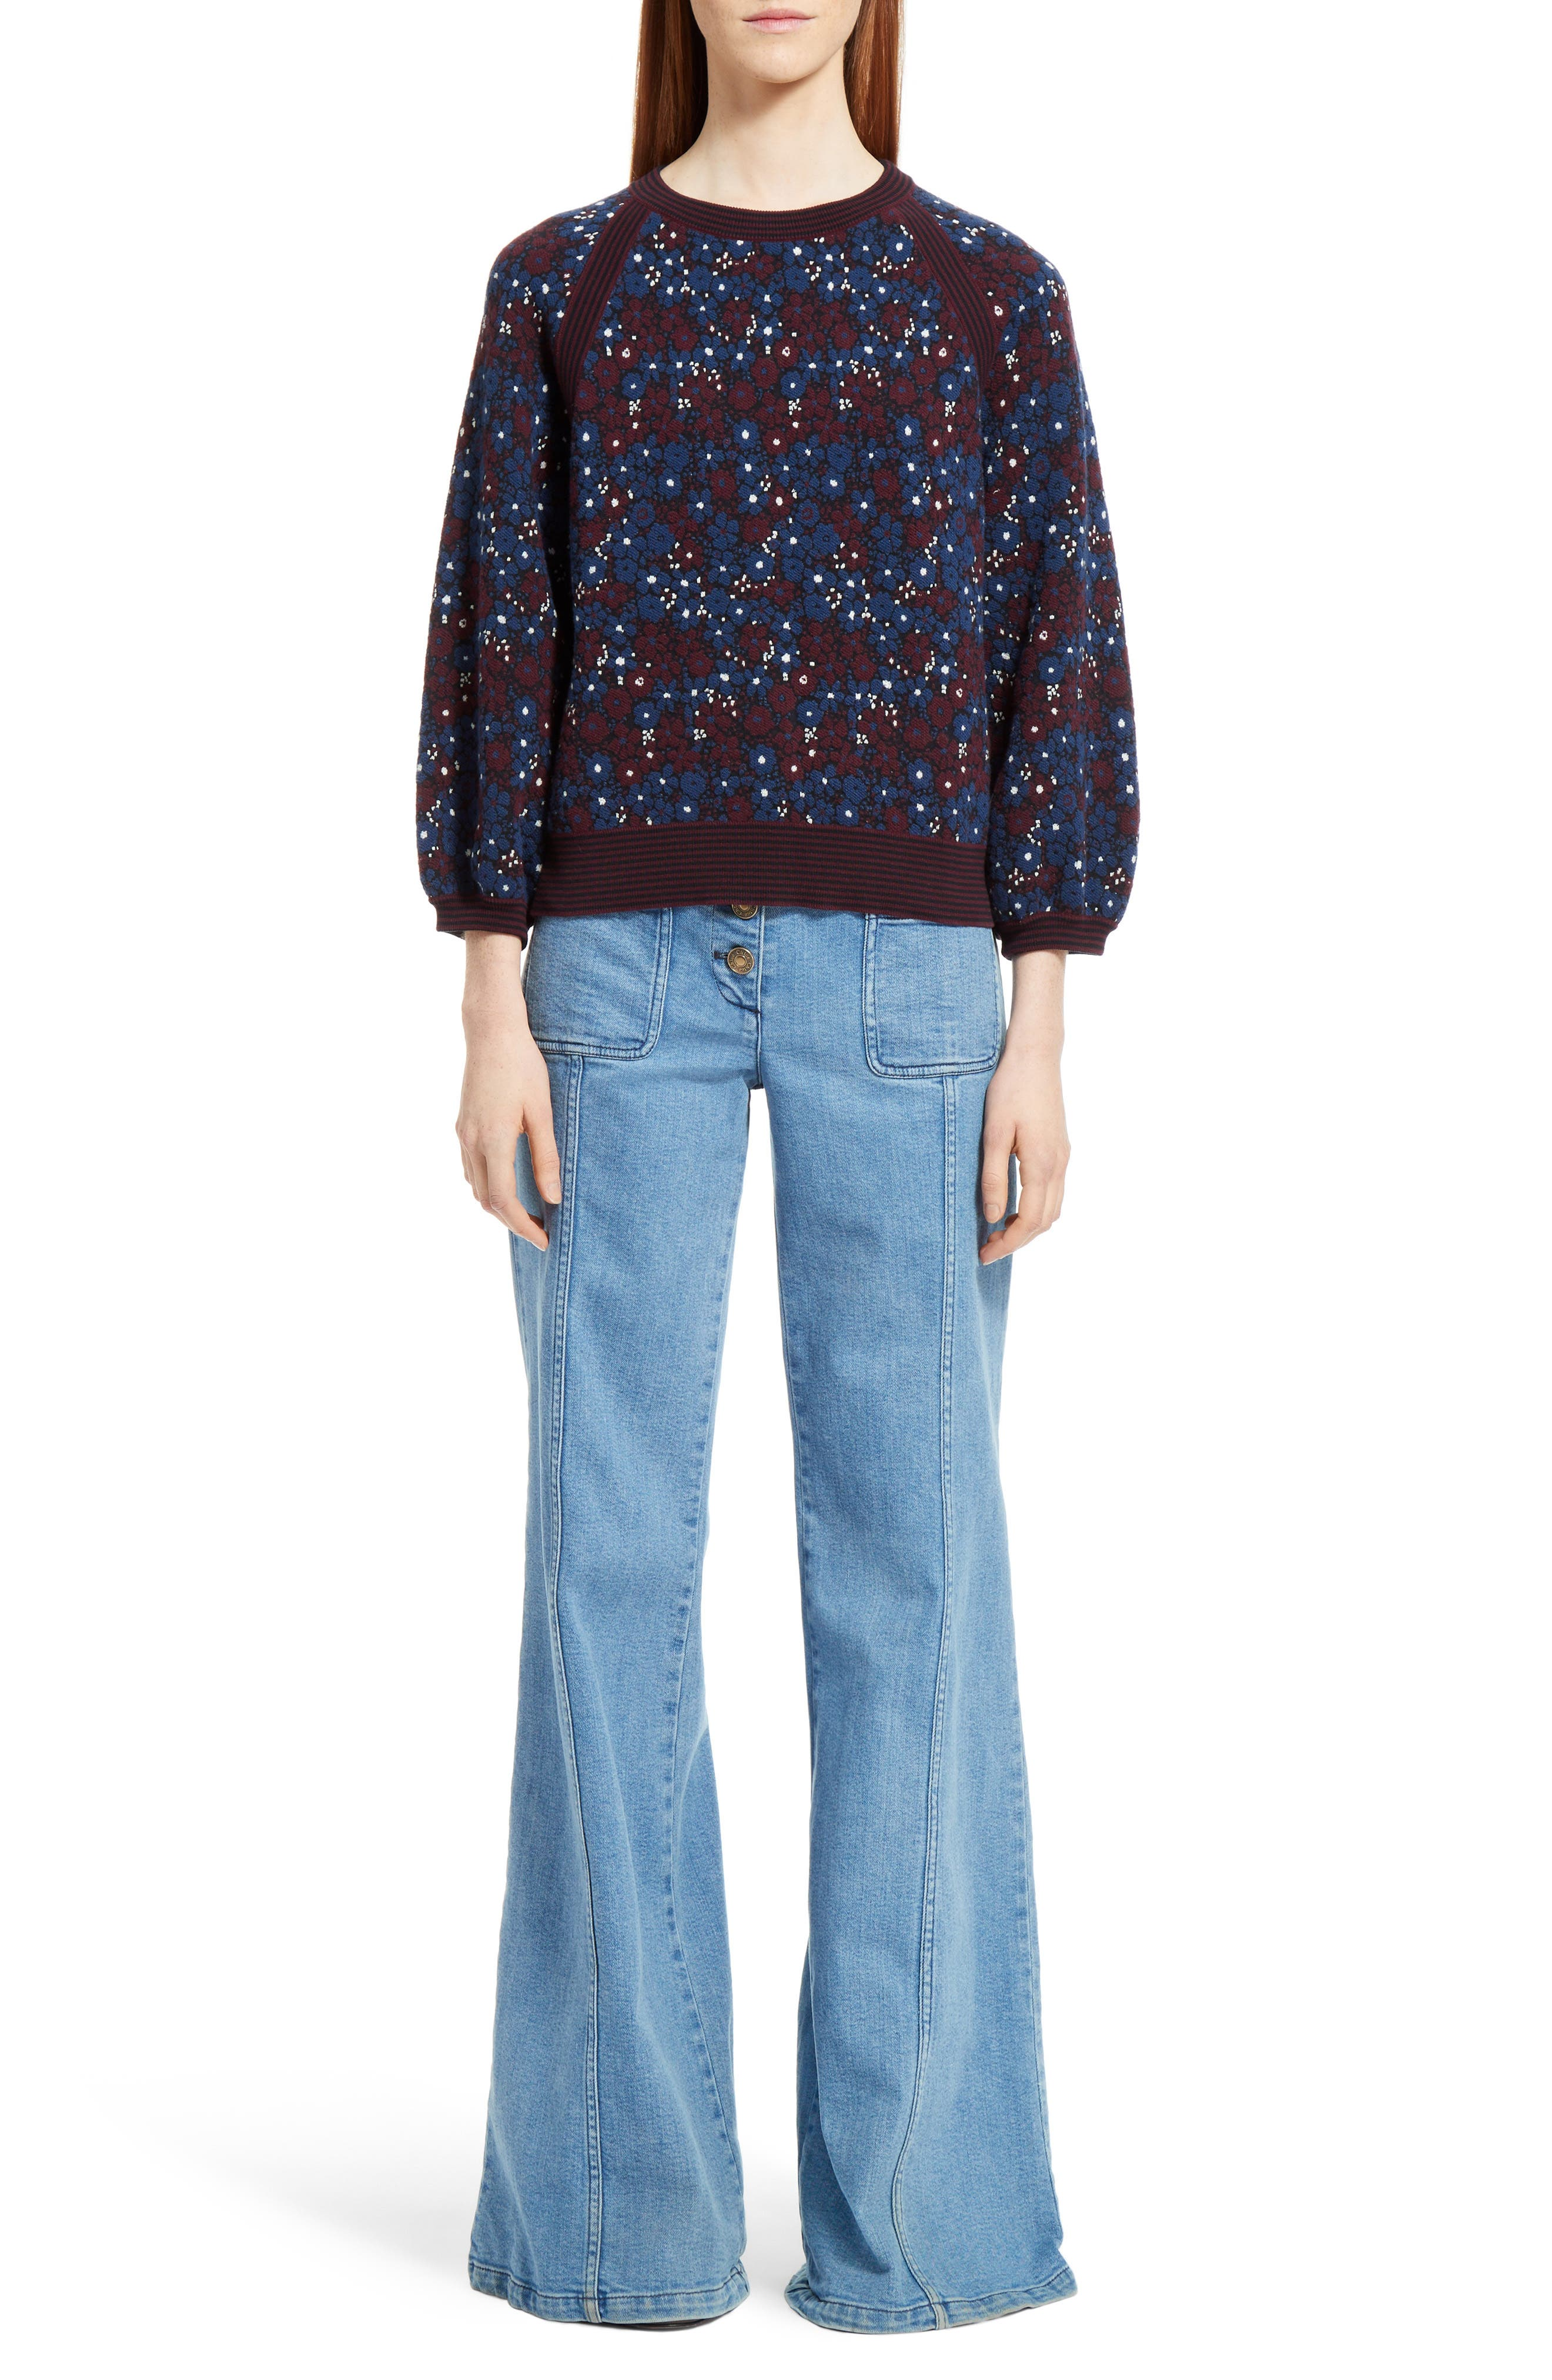 Alternate Image 1 Selected - Chloé Floral Jacquard Sweater